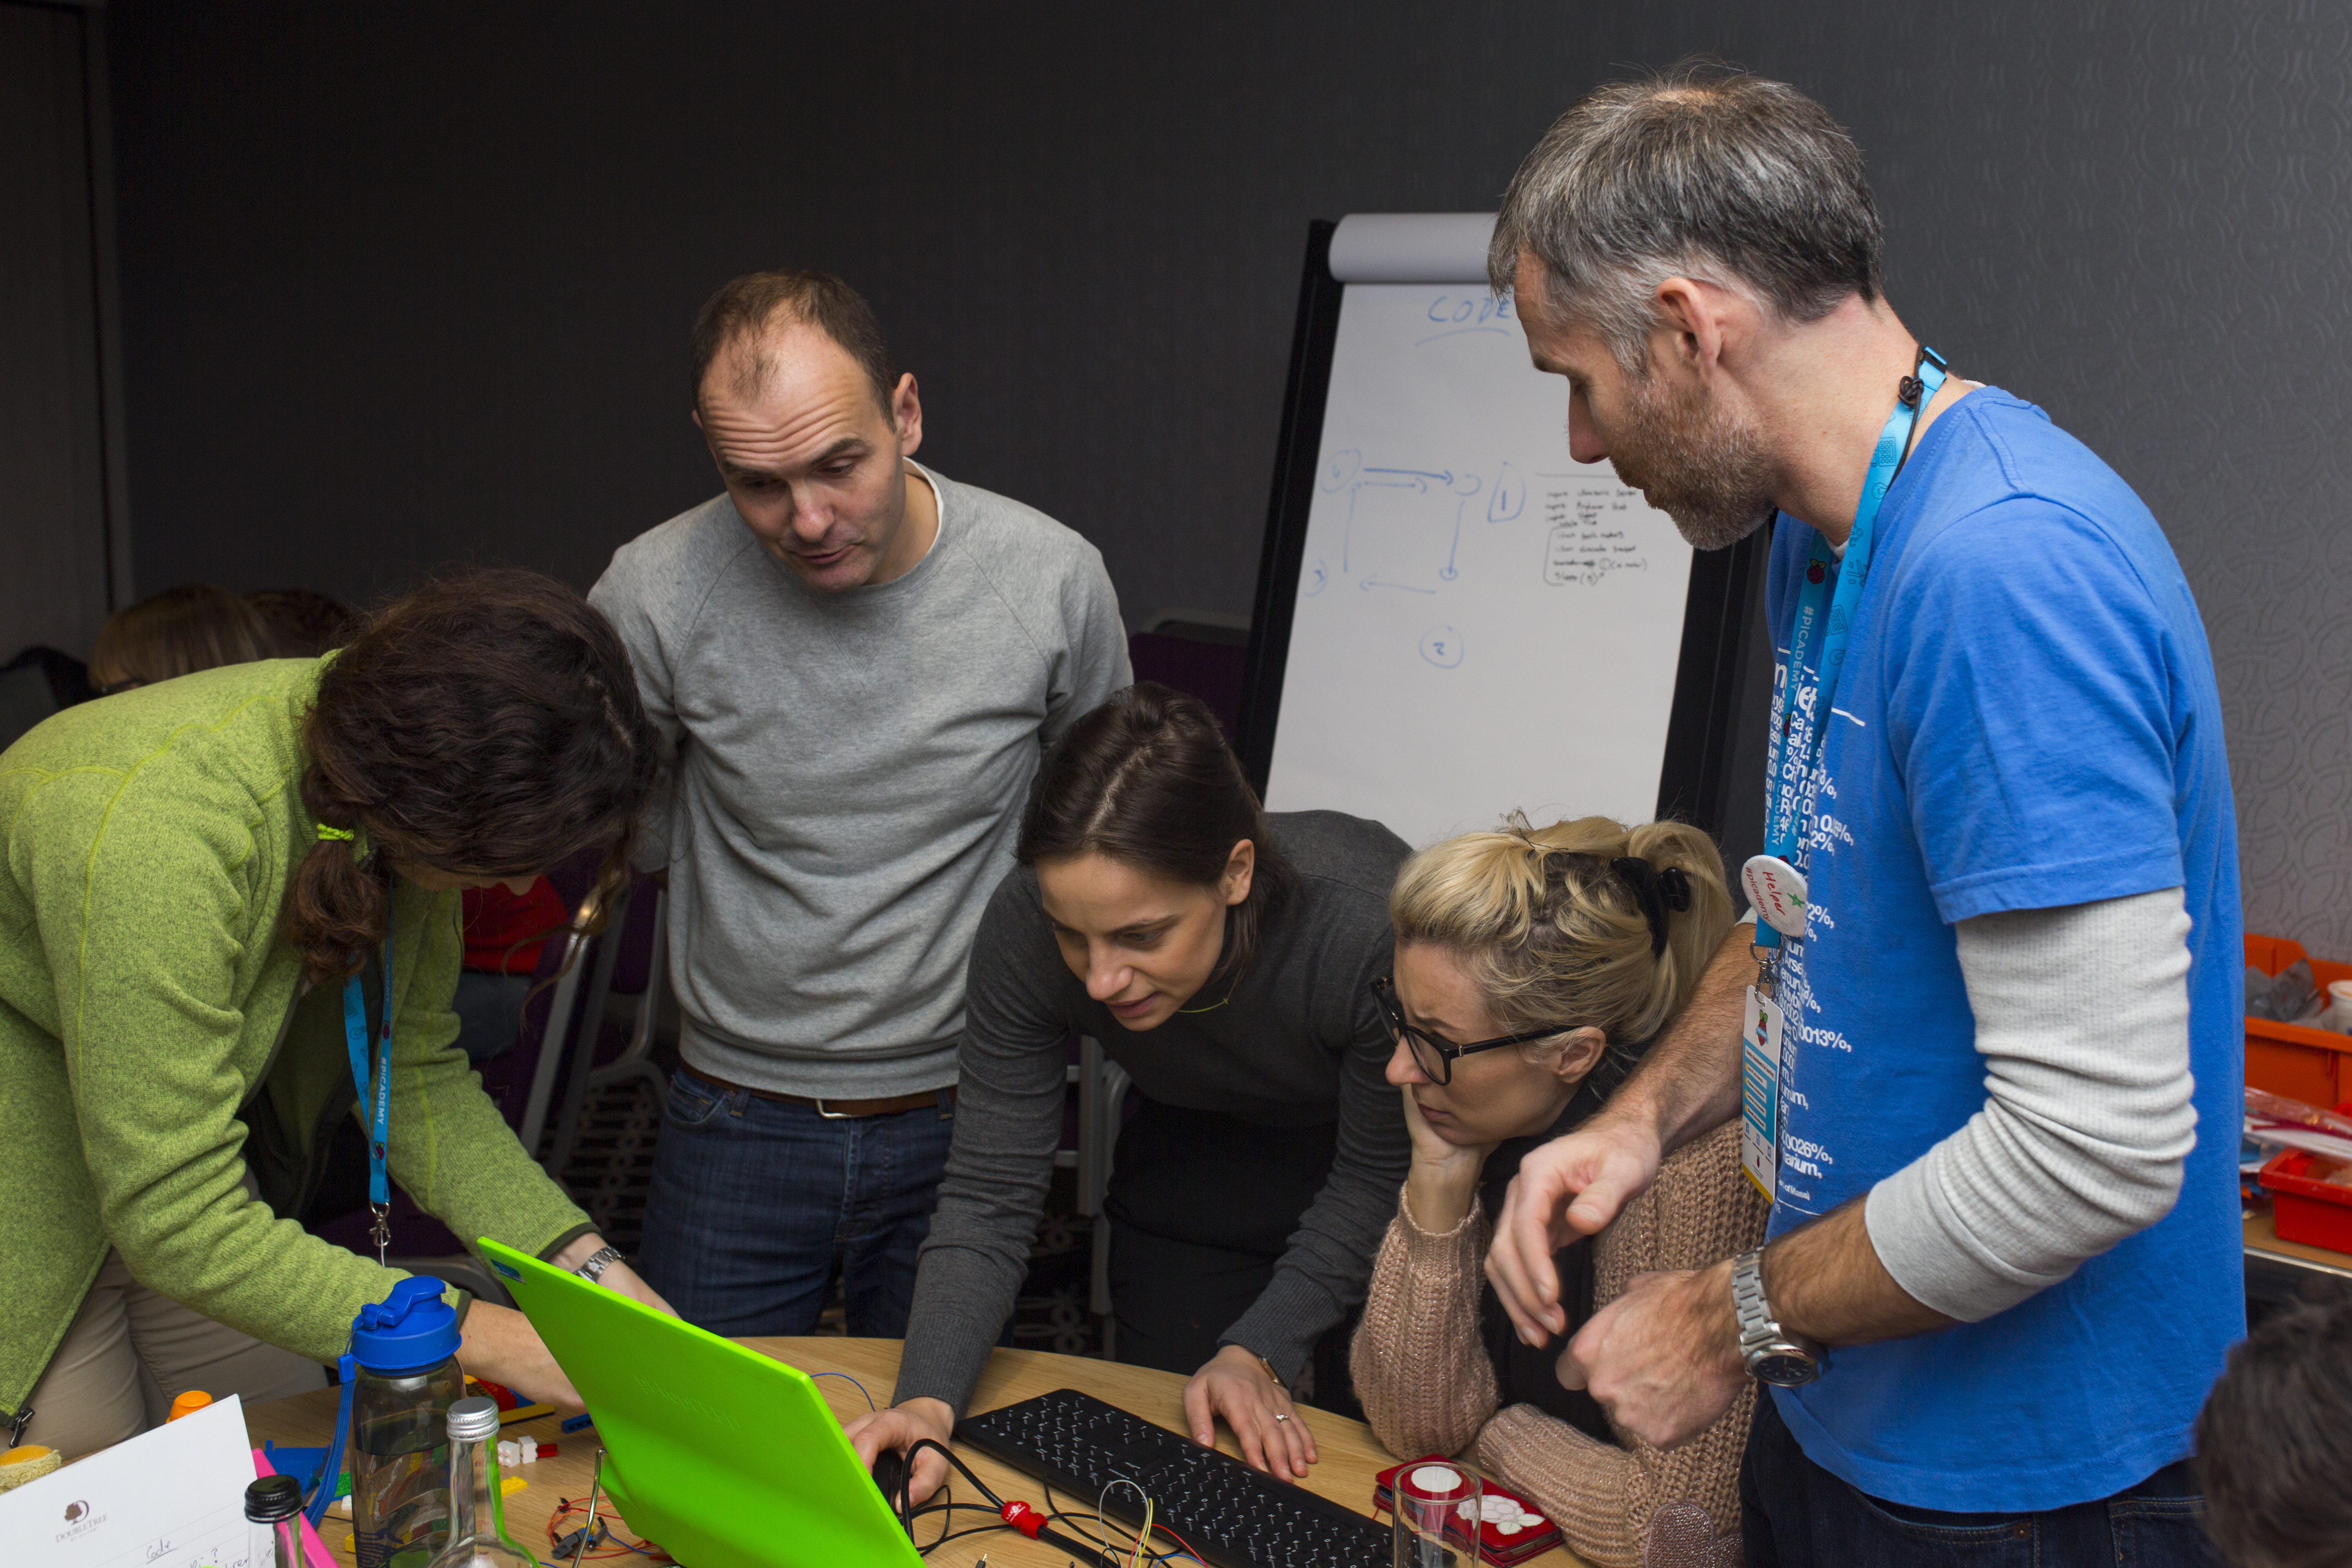 Users designing a physical computing project, gathered around a table